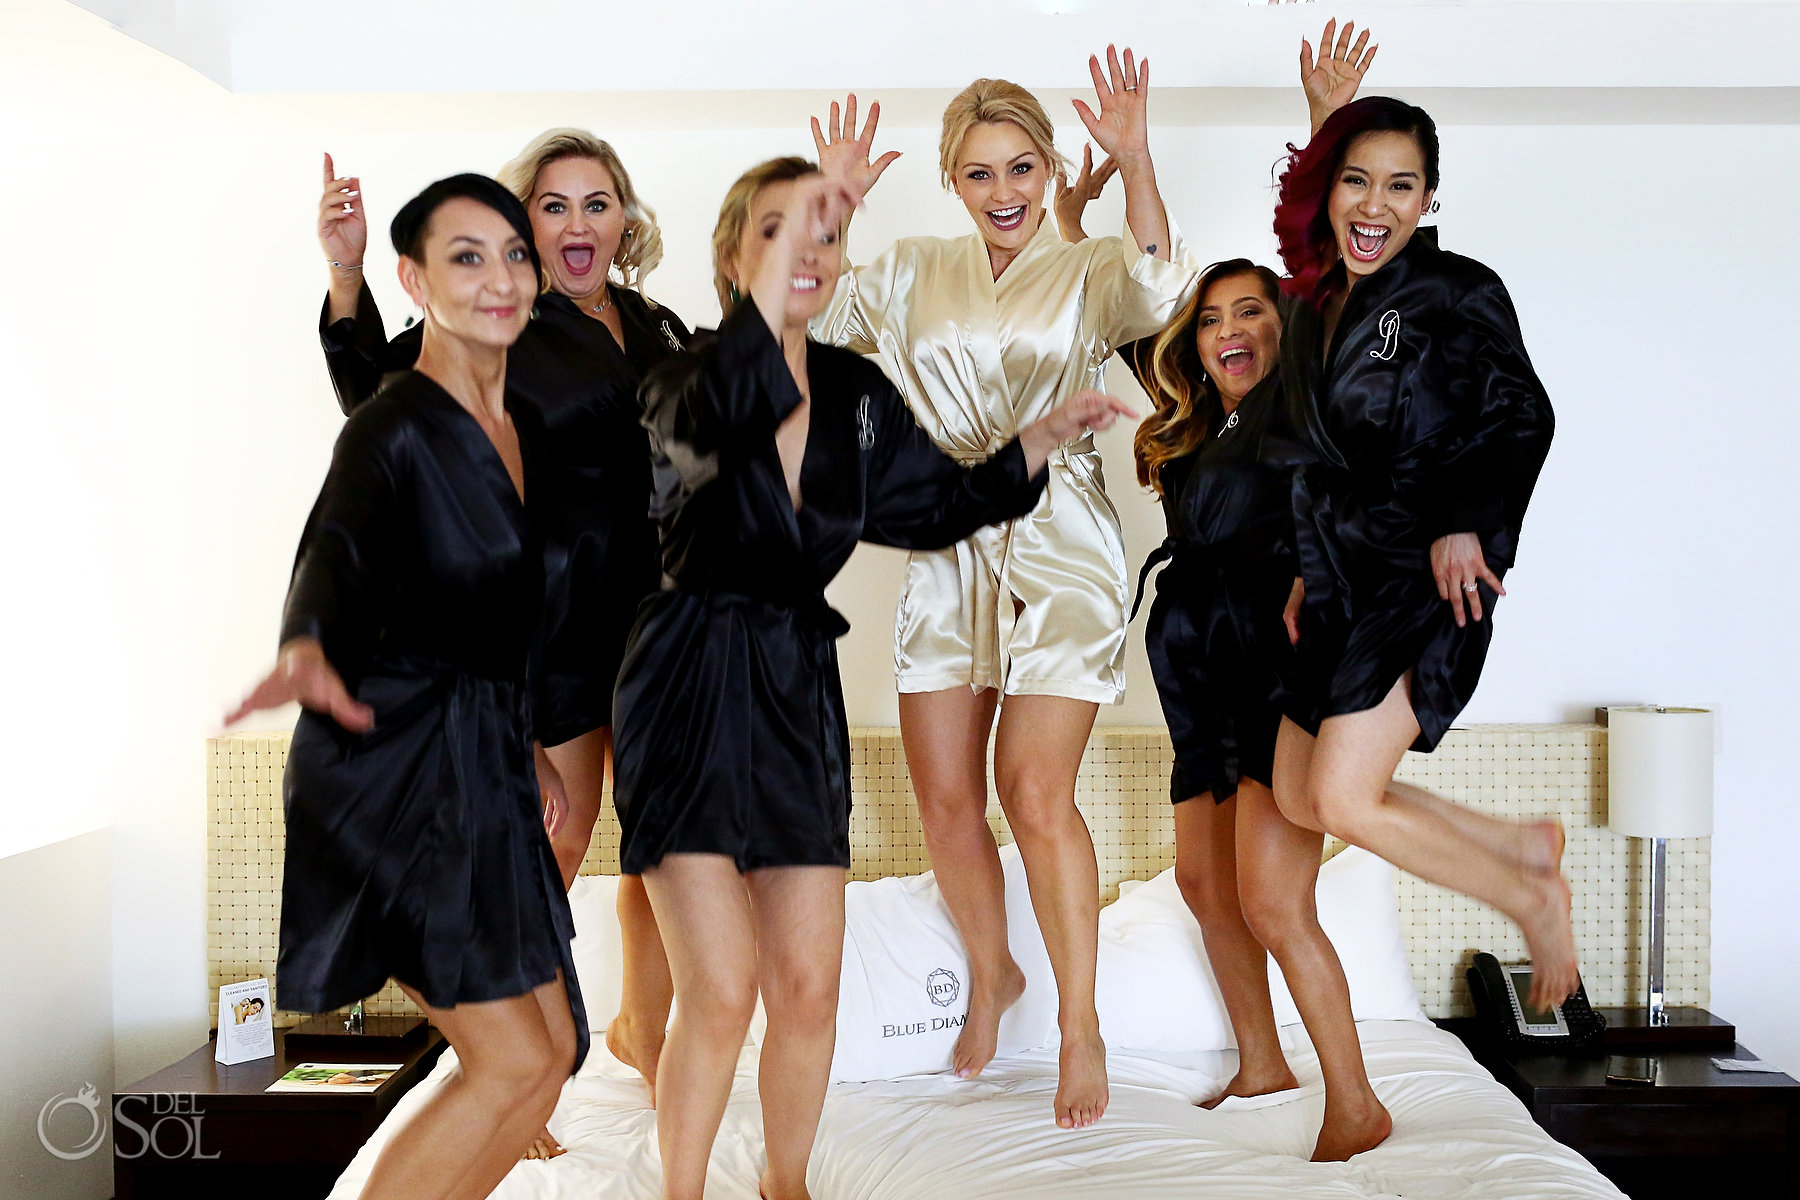 bride jumping on bed with bridesmaids getting ready photo ideas